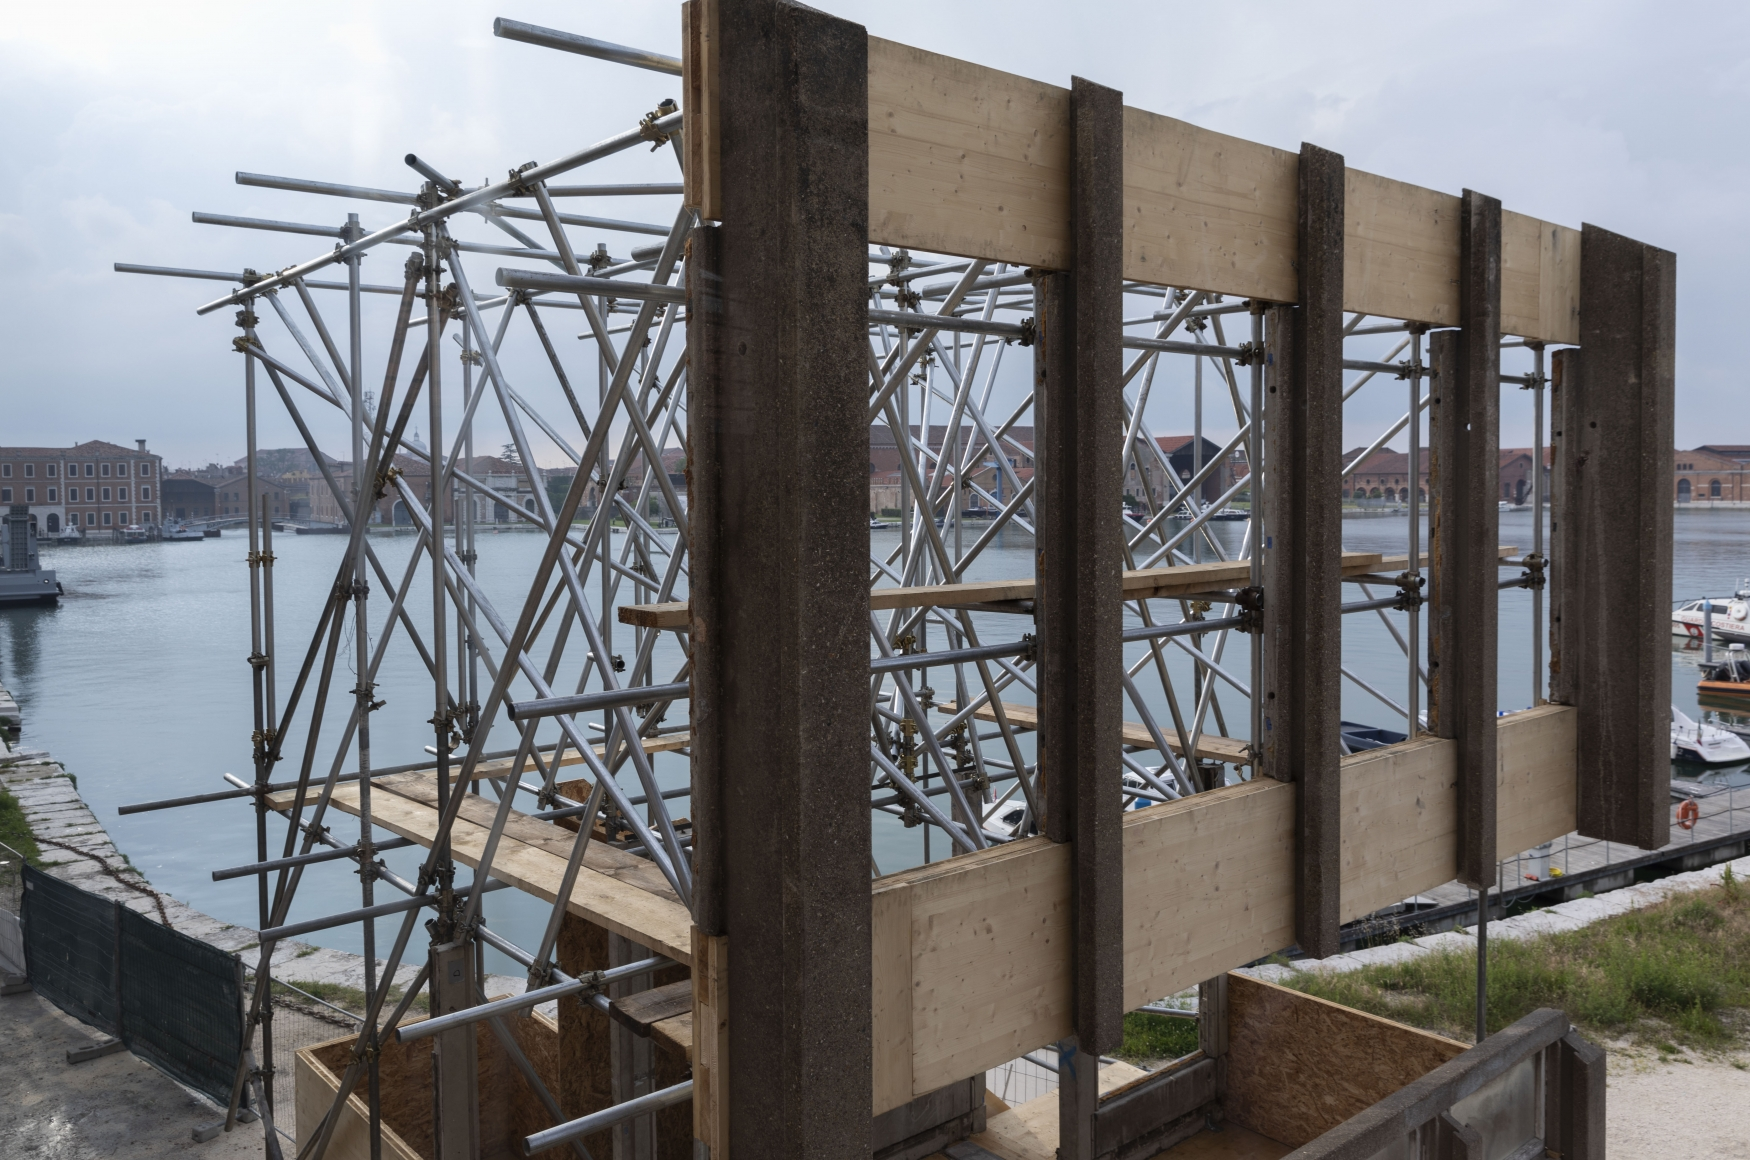 Do Ho Suh: Robin Hood Gardens: A Ruin in Reverse, Installation view, Pavilion of Applied Arts, Venice Architecture Biennale 2018,Venice, Italy